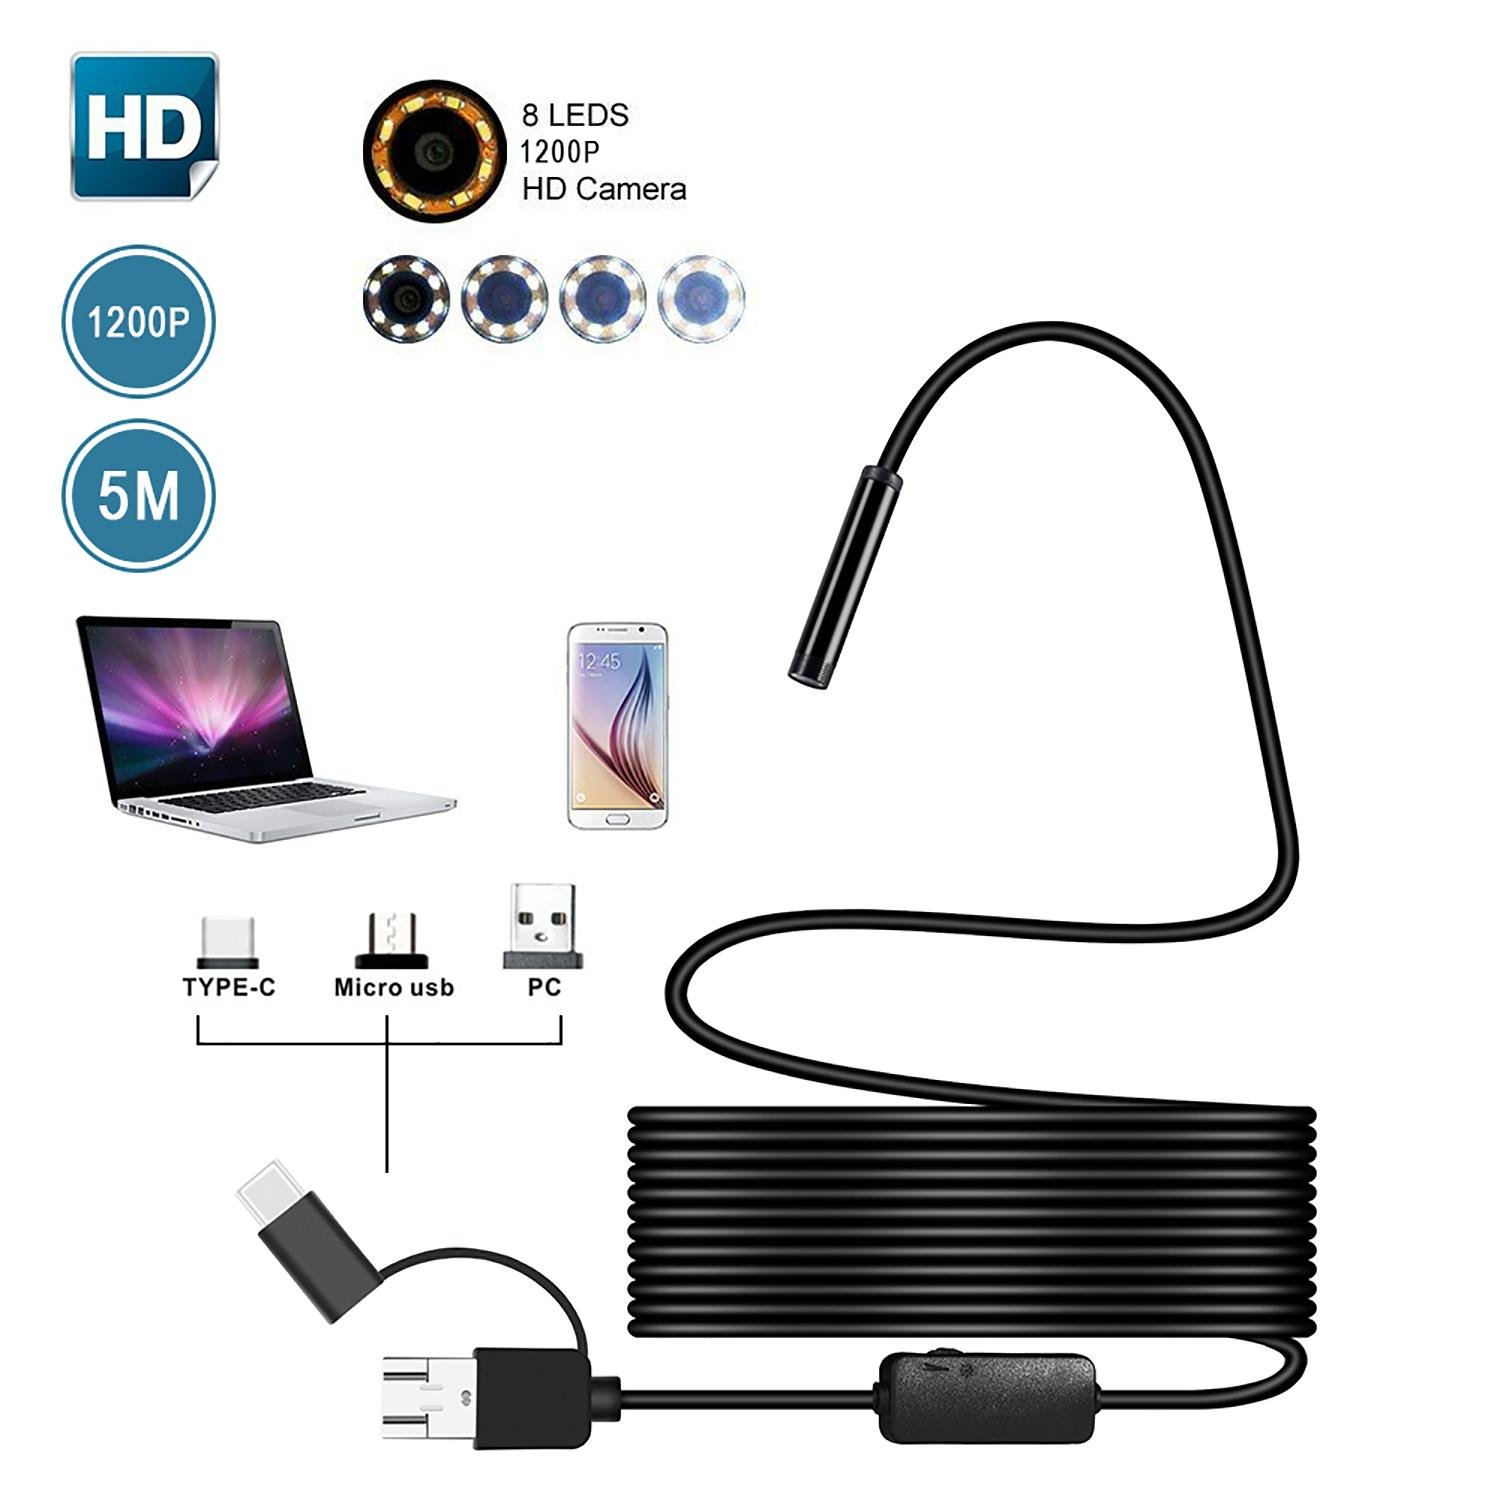 USB Endoscope Semi-rigid Waterproof 3 in 1 Probe Borescope 1200P HD with 8 Adjustable LED Lights Waterproof Snake Sewer Camera for Android Windows /& MacBook Device KOBWA Endoscope for Android